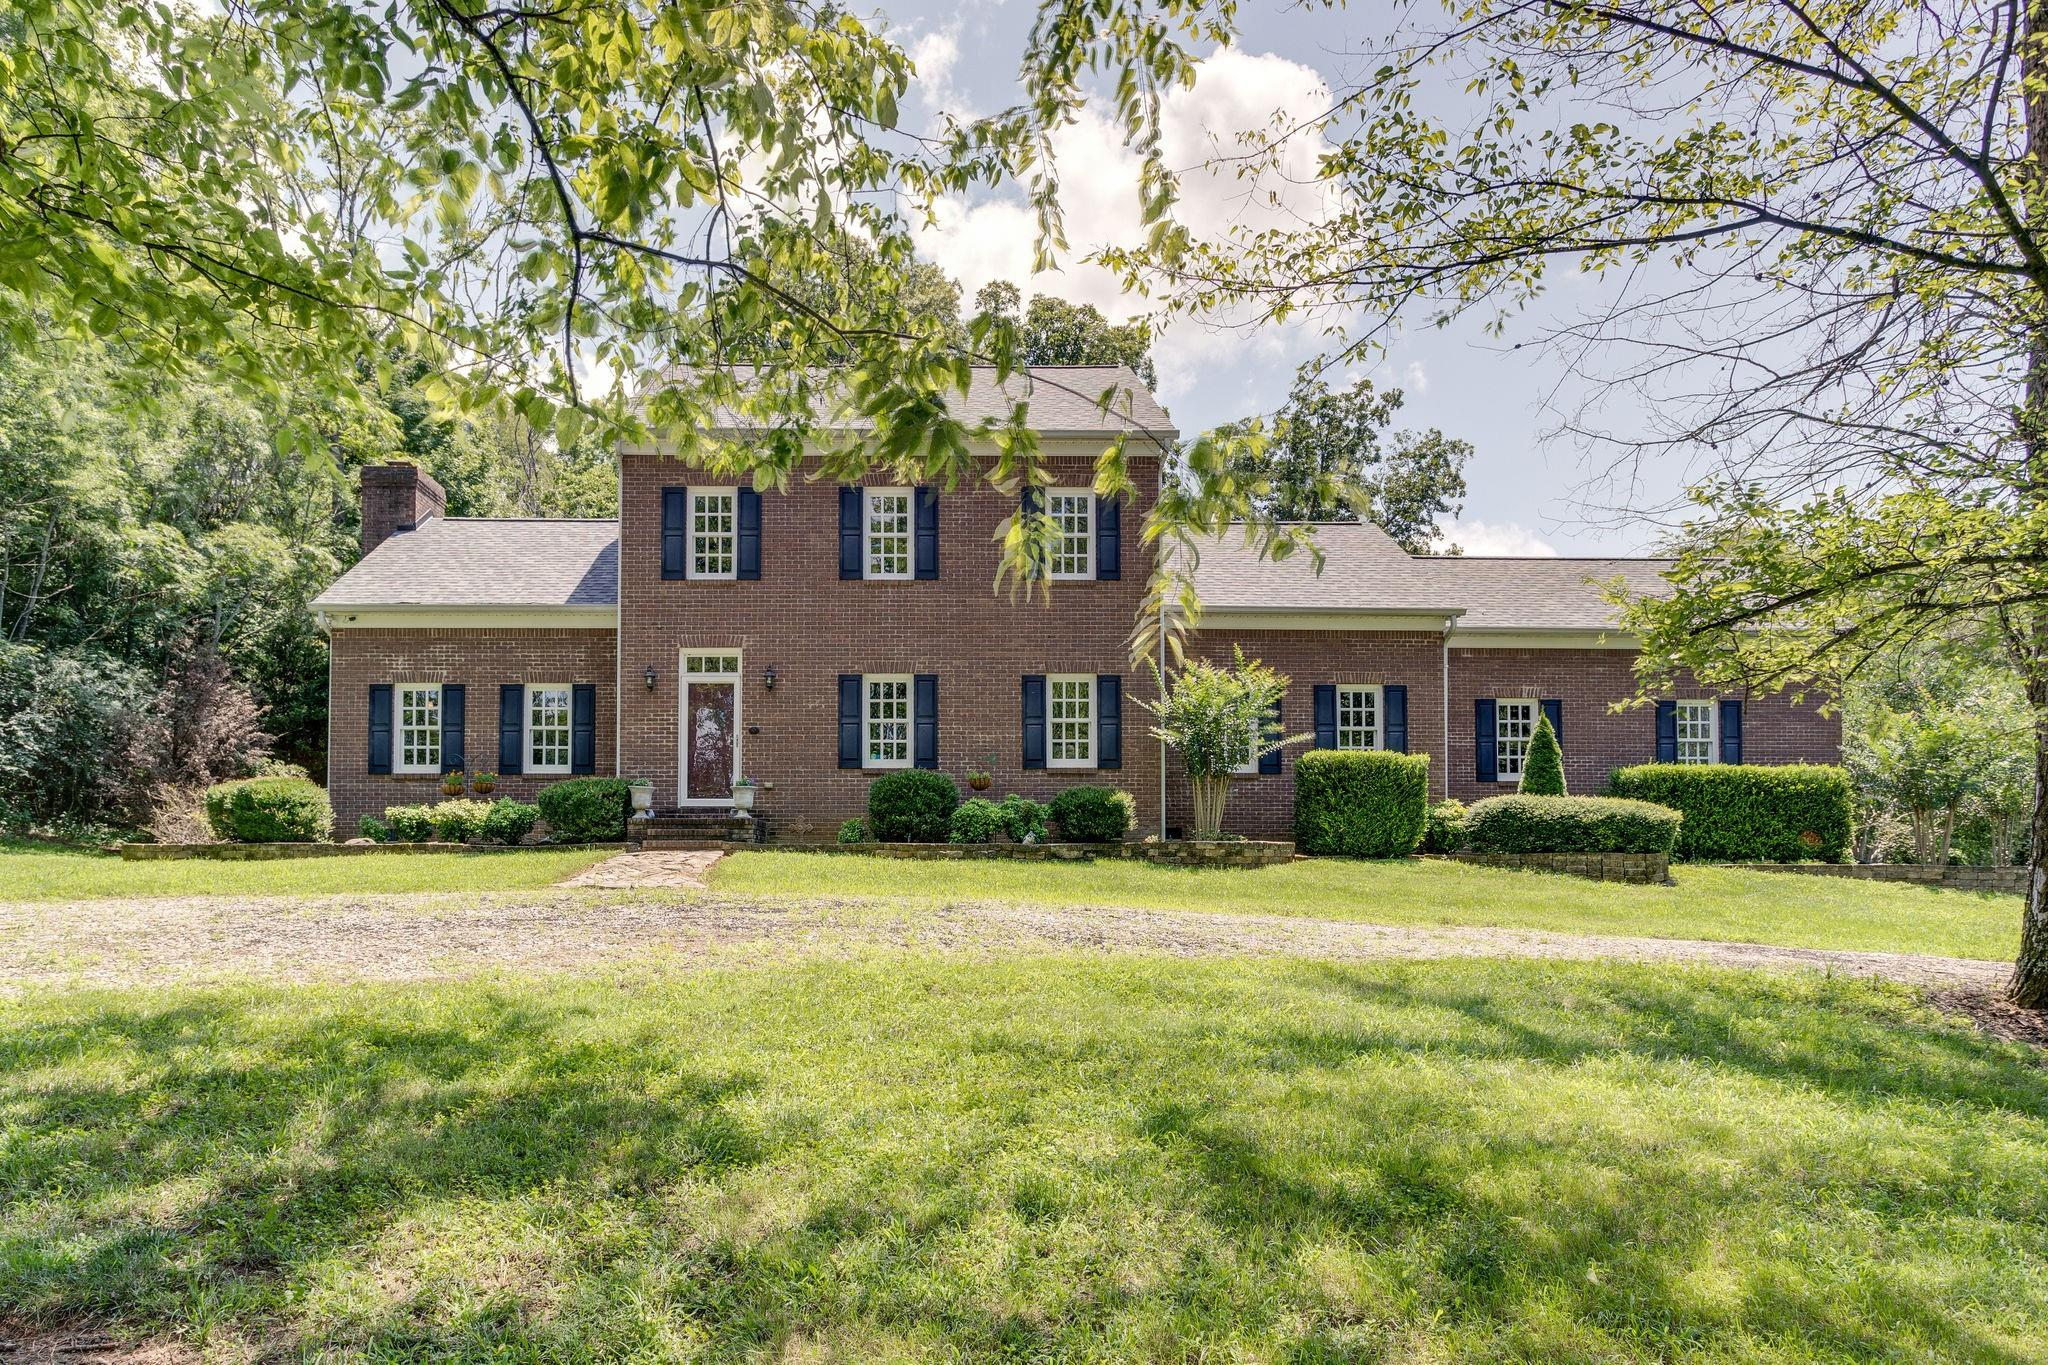 3791 McCandless Rd, Columbia, TN 38401 - Columbia, TN real estate listing